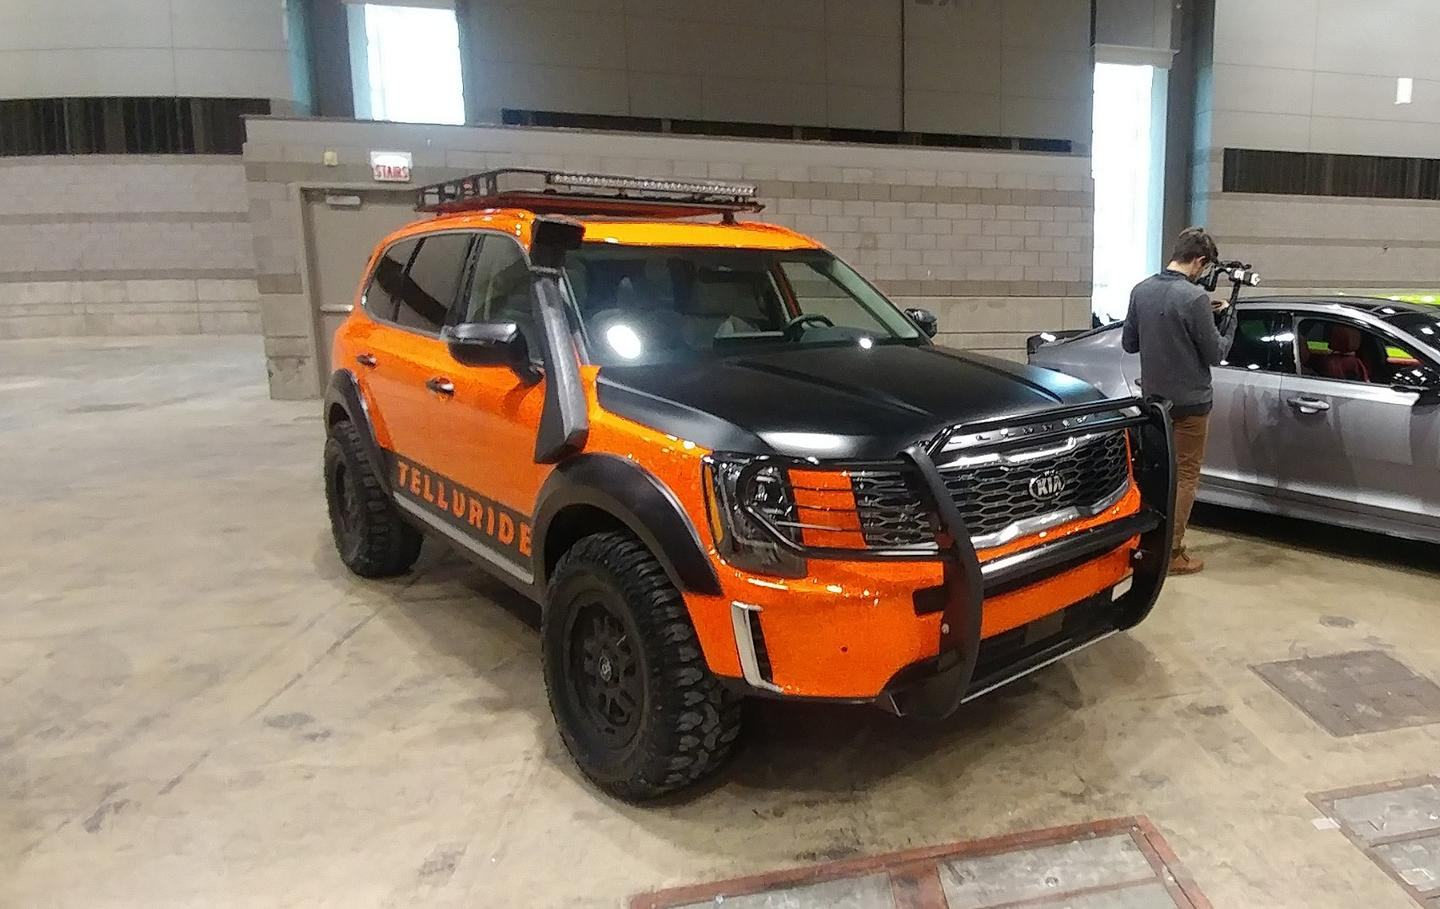 Kia brought several concepts for the new Telluride SUV, including this snorkeled orange beast that emitted a satisfying growl when started